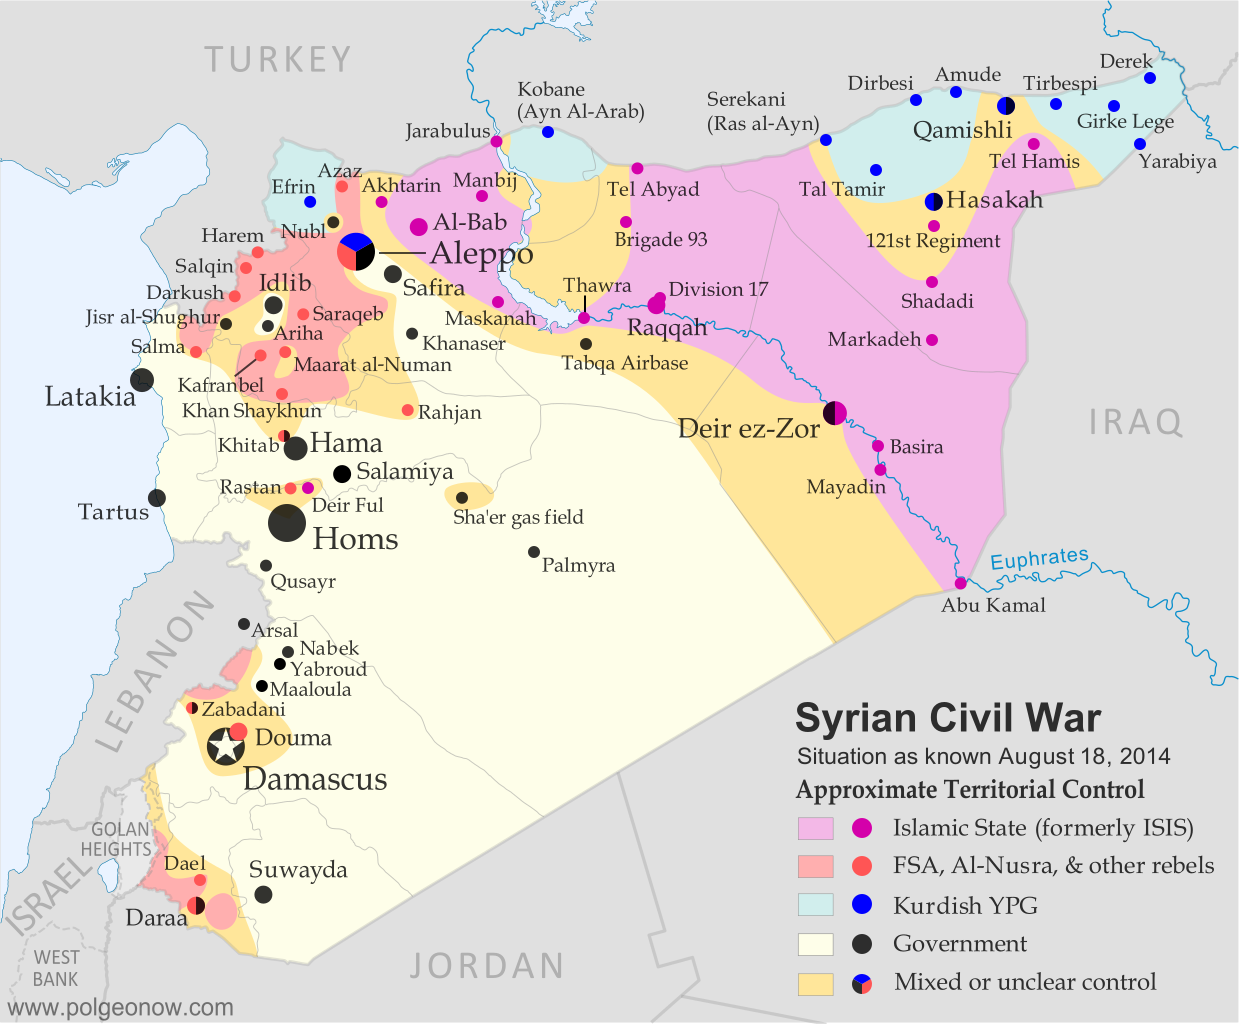 Syria civil war map august 2014 13 political geography now map of fighting and territorial control in syrias civil war free syrian army rebels gumiabroncs Images